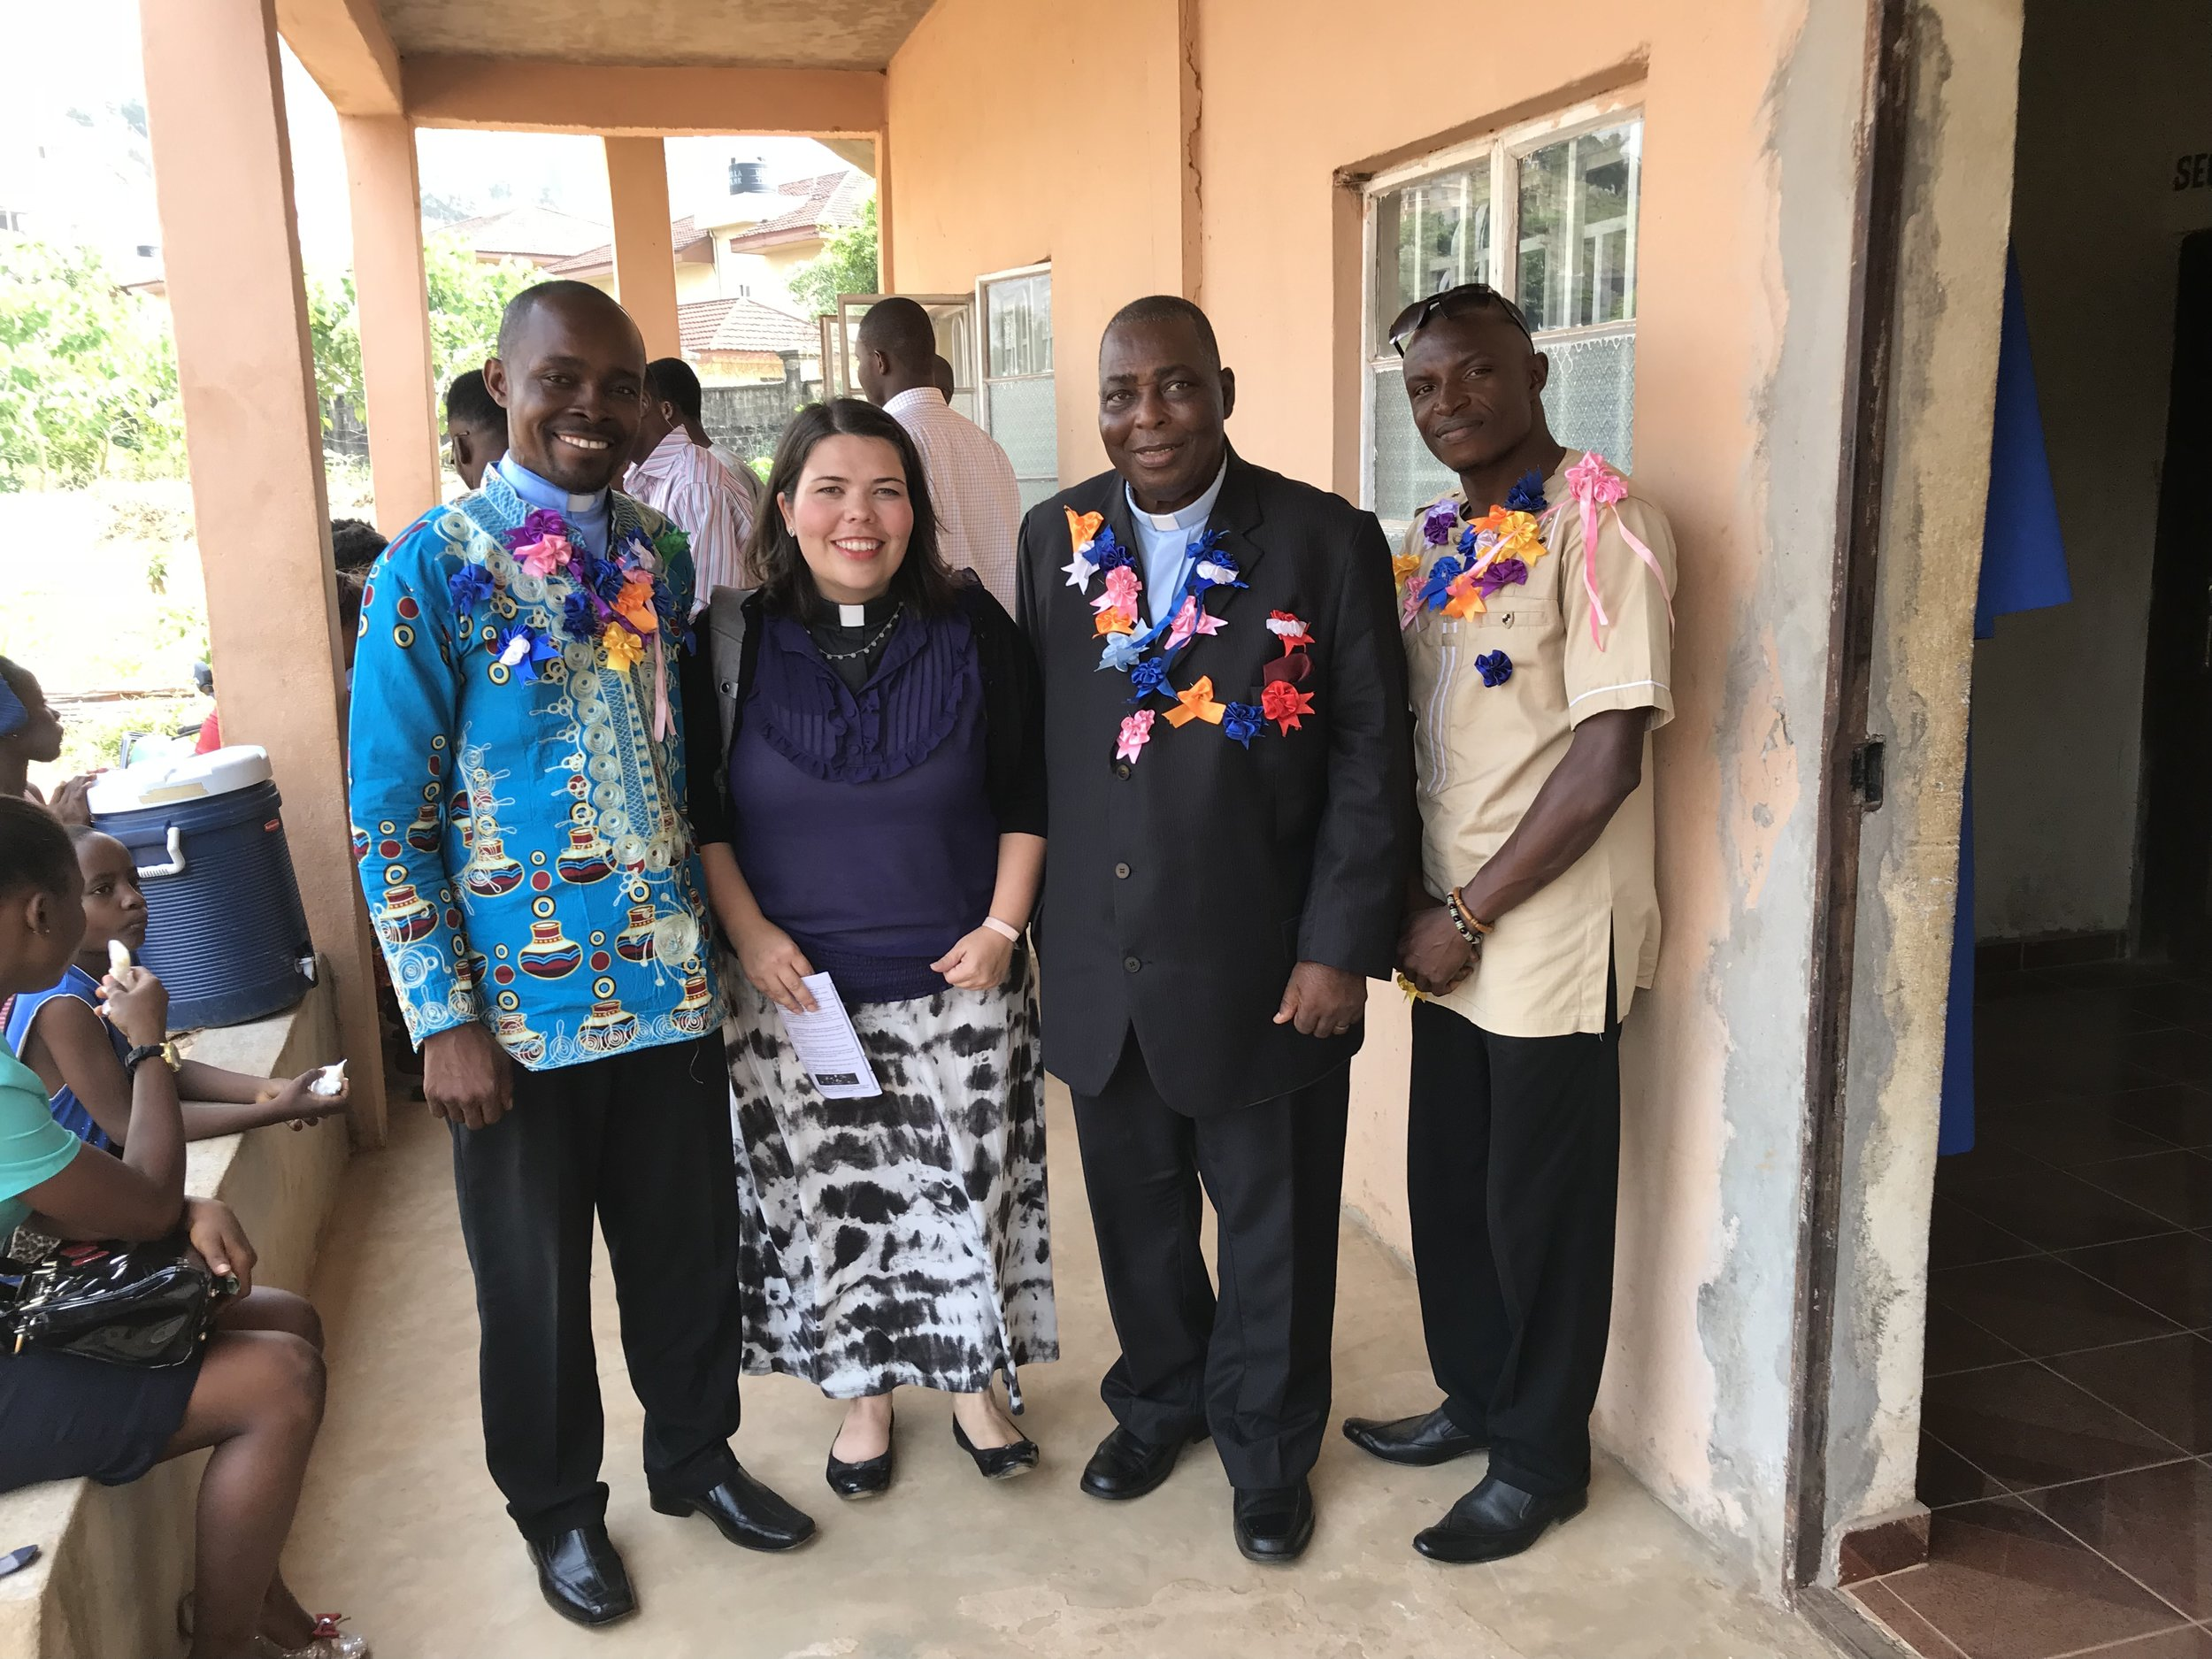 The pastors of Milton Margai Memorial UMC. Notice the ribbons. The senior pastor is Rev. Victor Kainboy on the left. Then the associate pastor who is also a civil engineer. Then on the right is an evangelist. Evangelists are a special set of pastors here.